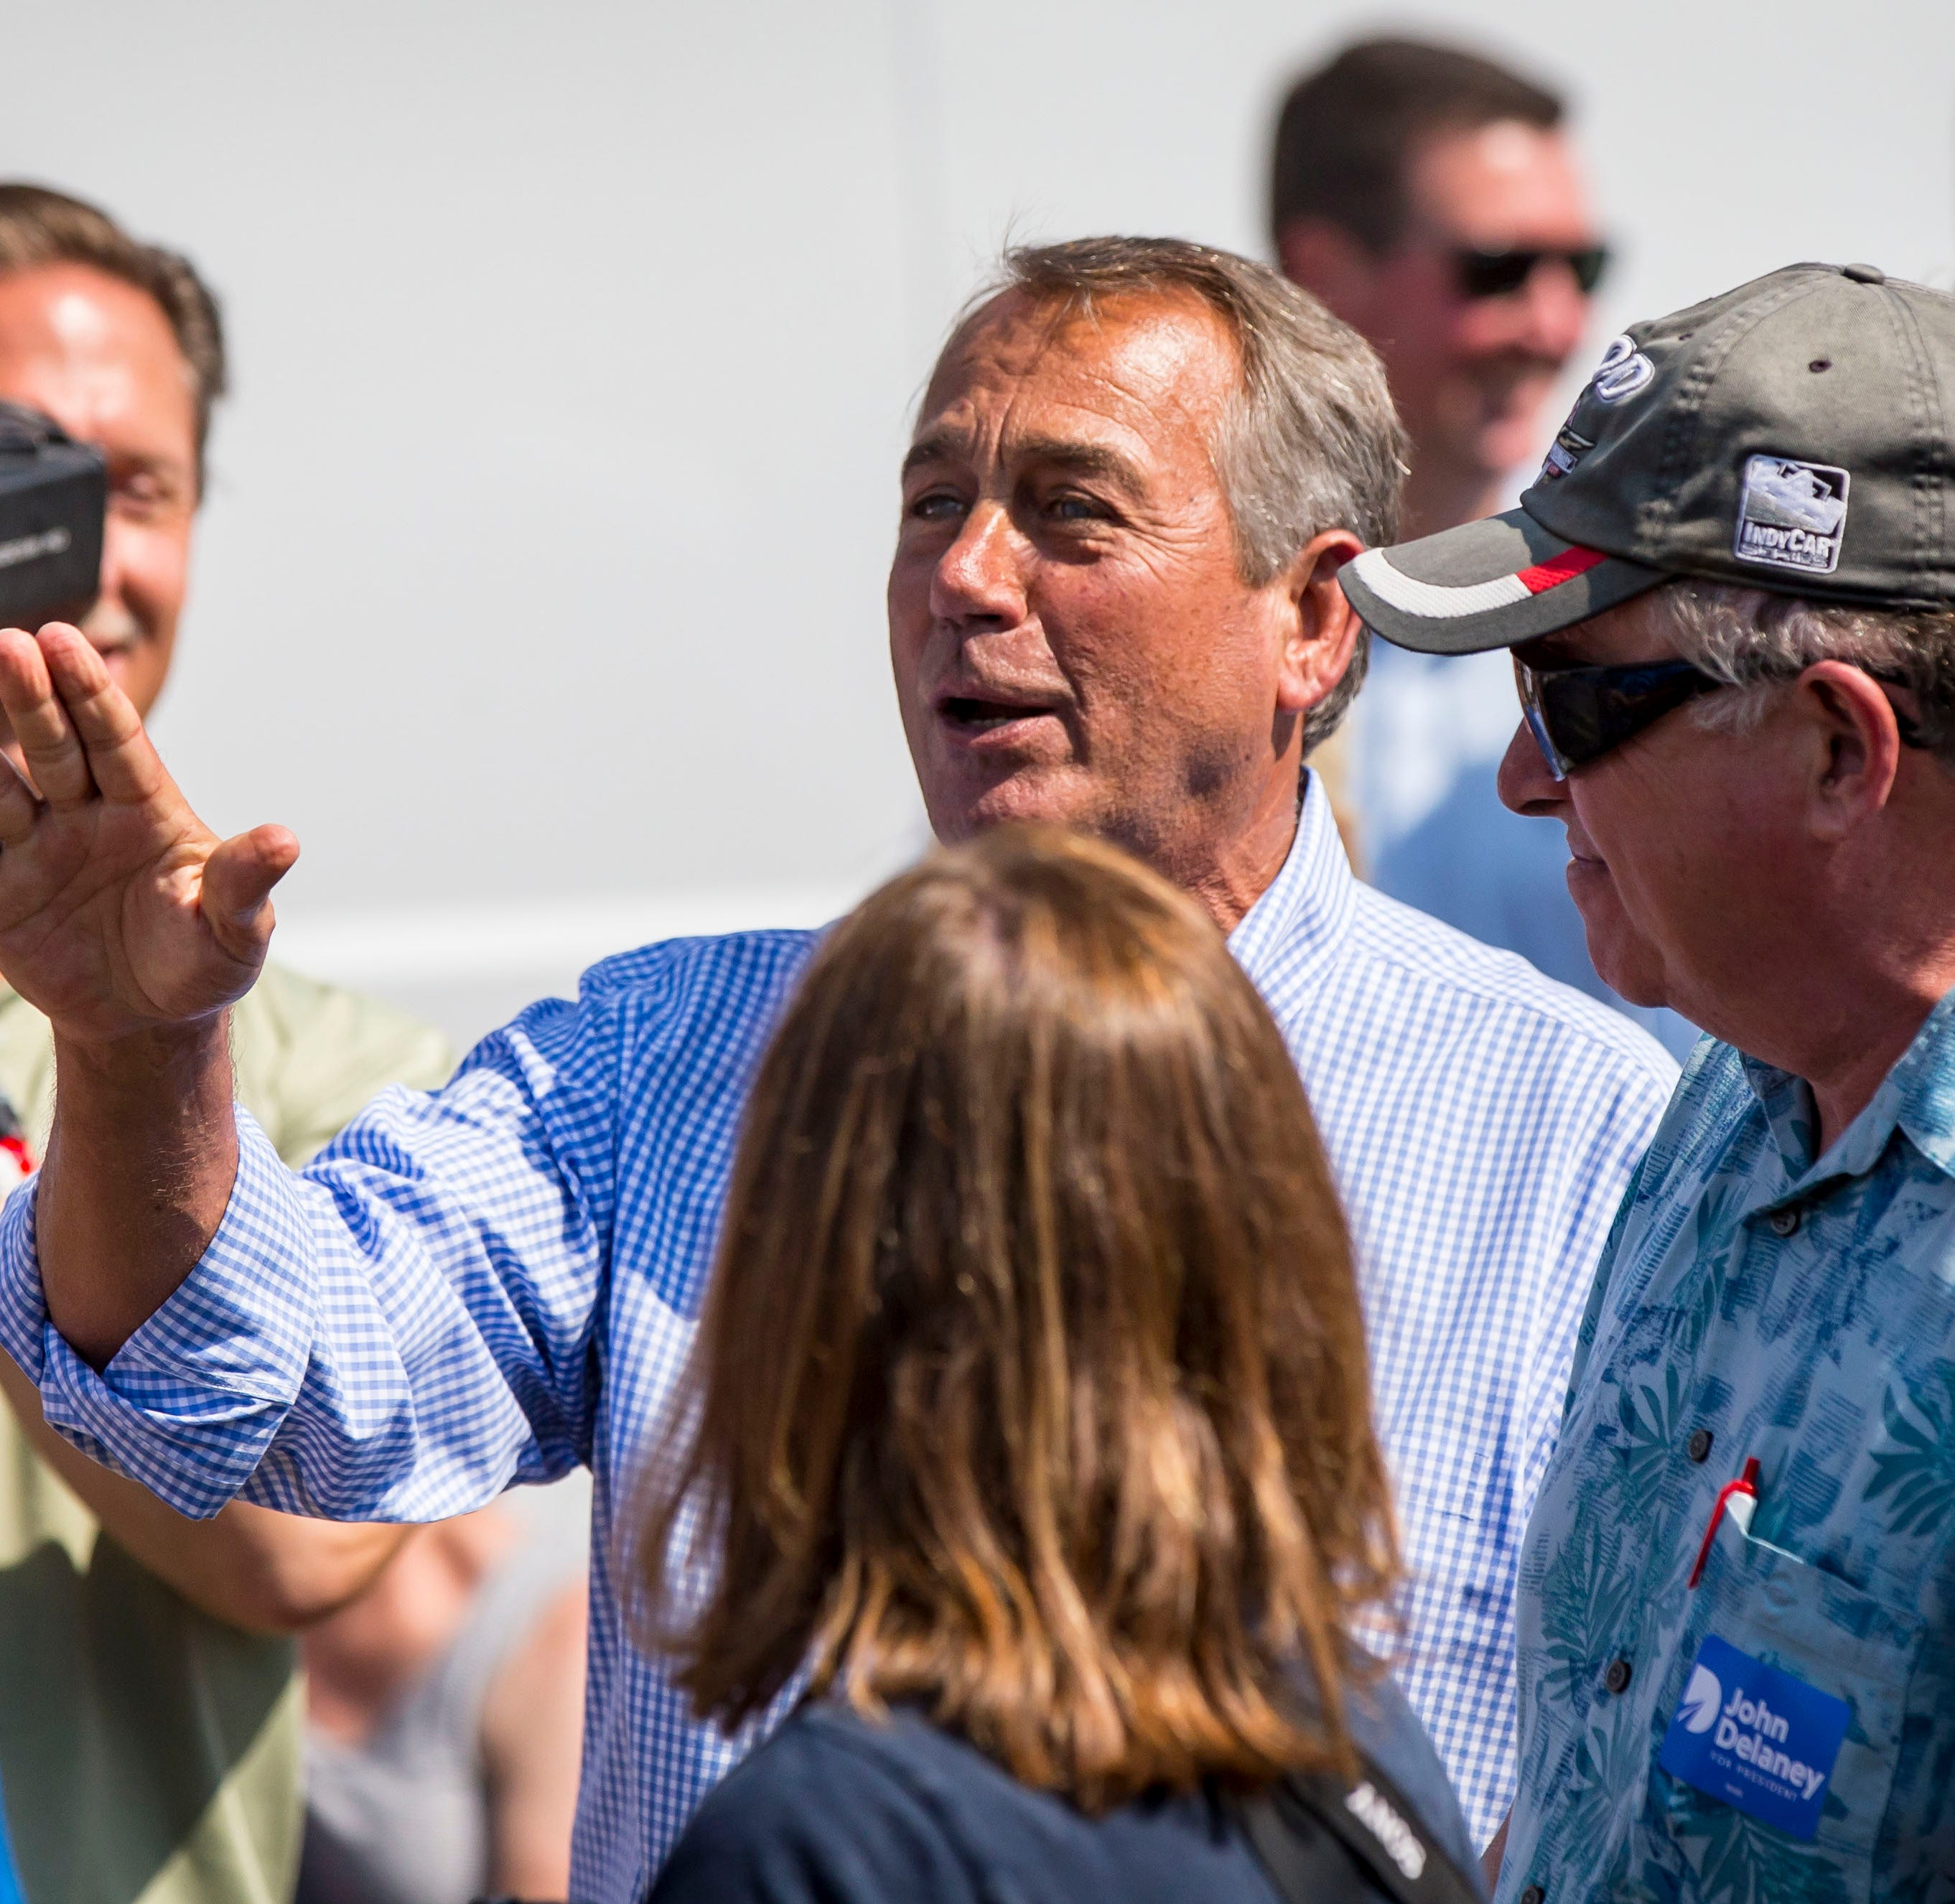 2020 buzz, cameo appearances and more: Here are the political highlights from the 2018 Iowa State Fair